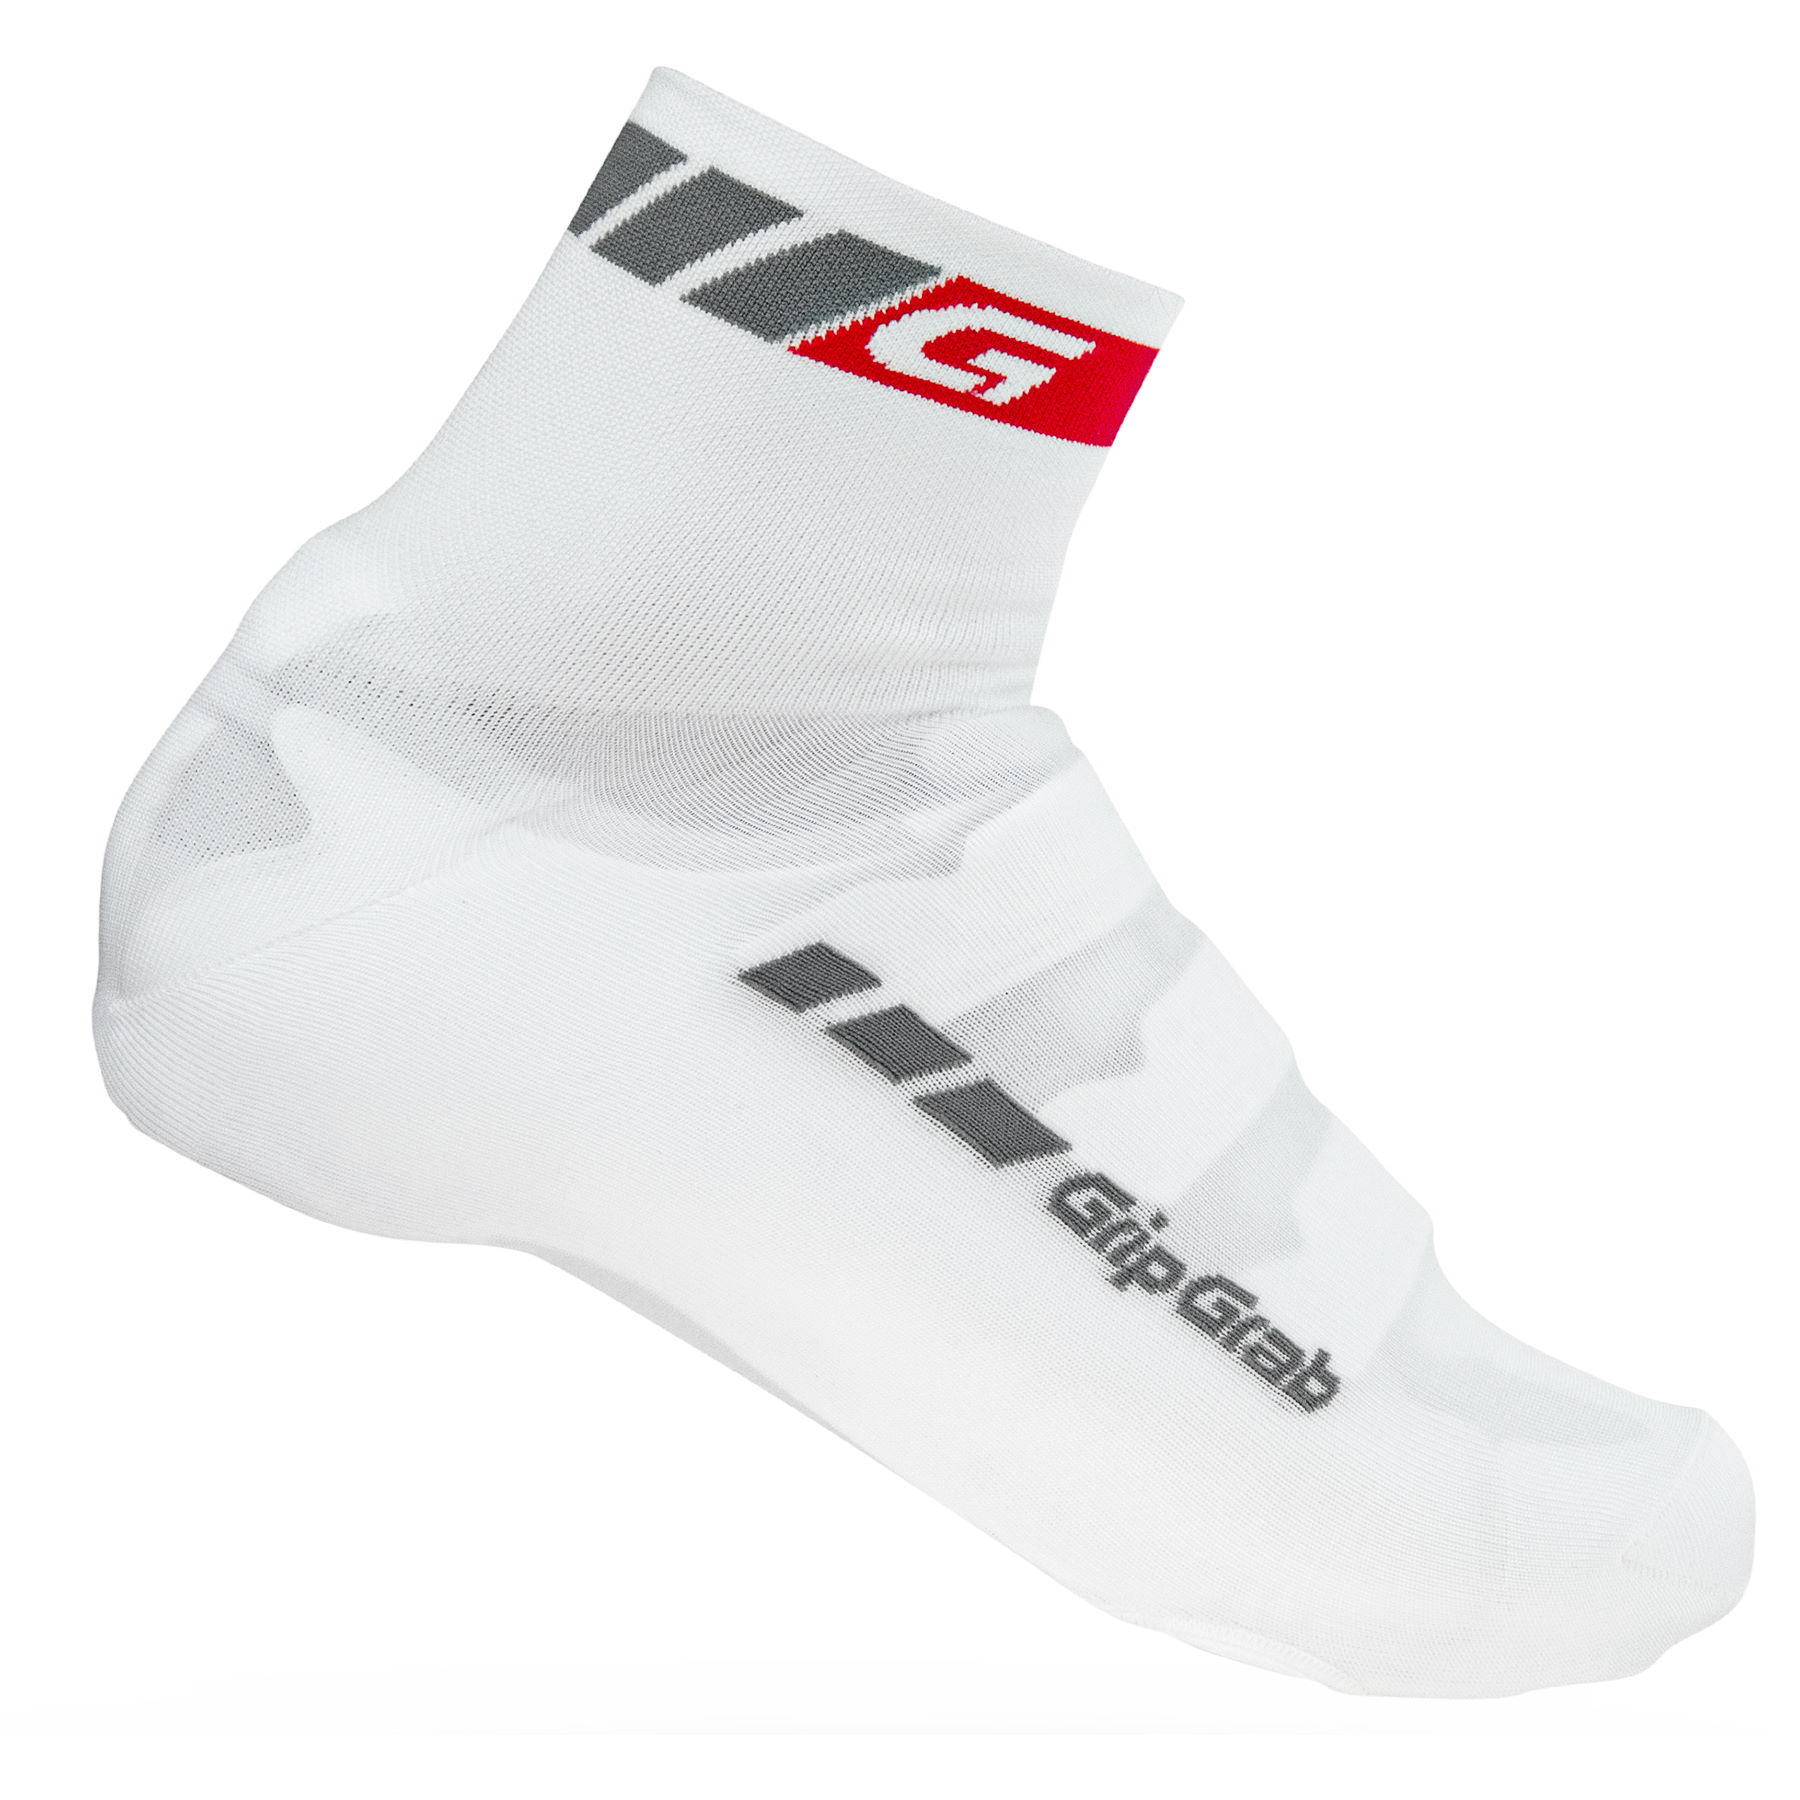 gripgrab-cover-sock-overshoes-overshoes-white-2004-7